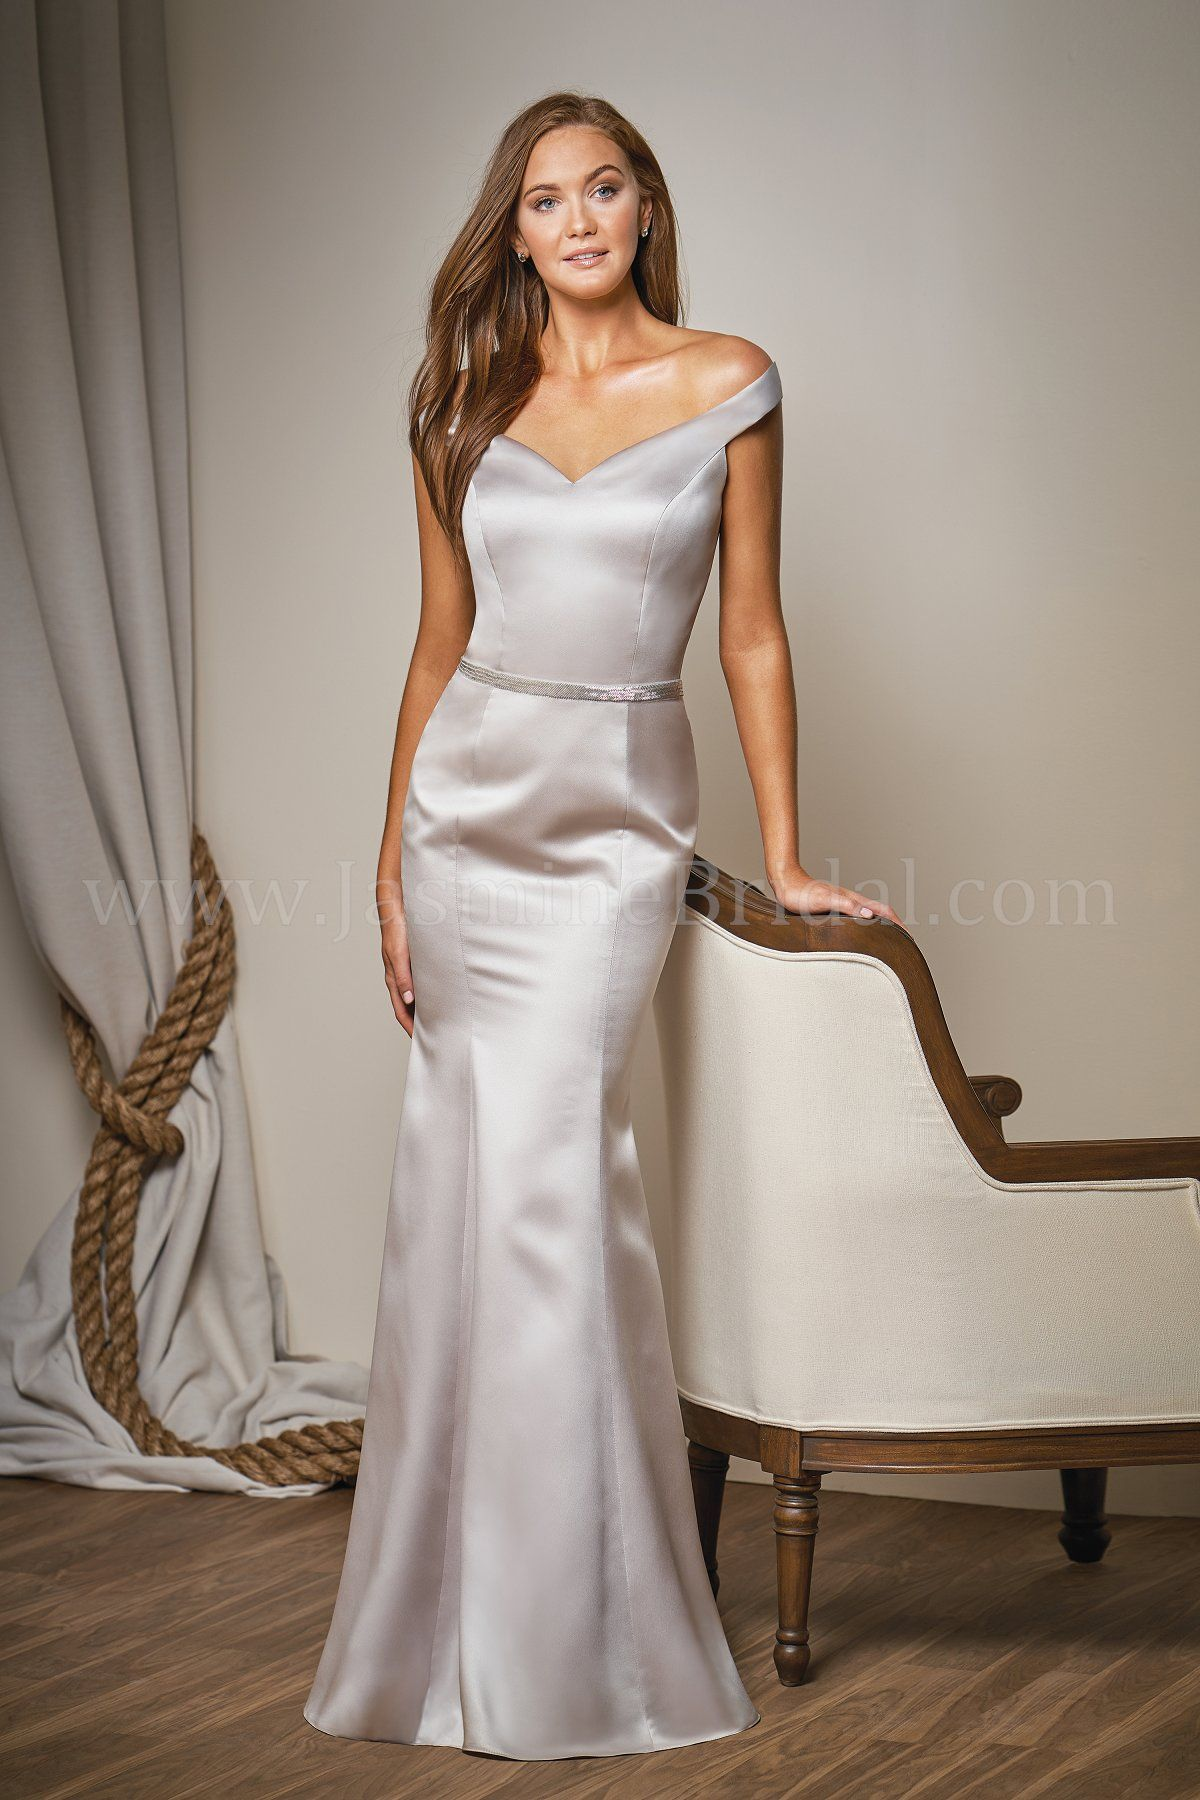 Jasmine Bridal Belsoie Style L204011 In Grecian Ivory Marquis Satin Fit Flare Bridesmaid Dress Off The Shoulder Neckline Beaded Belt